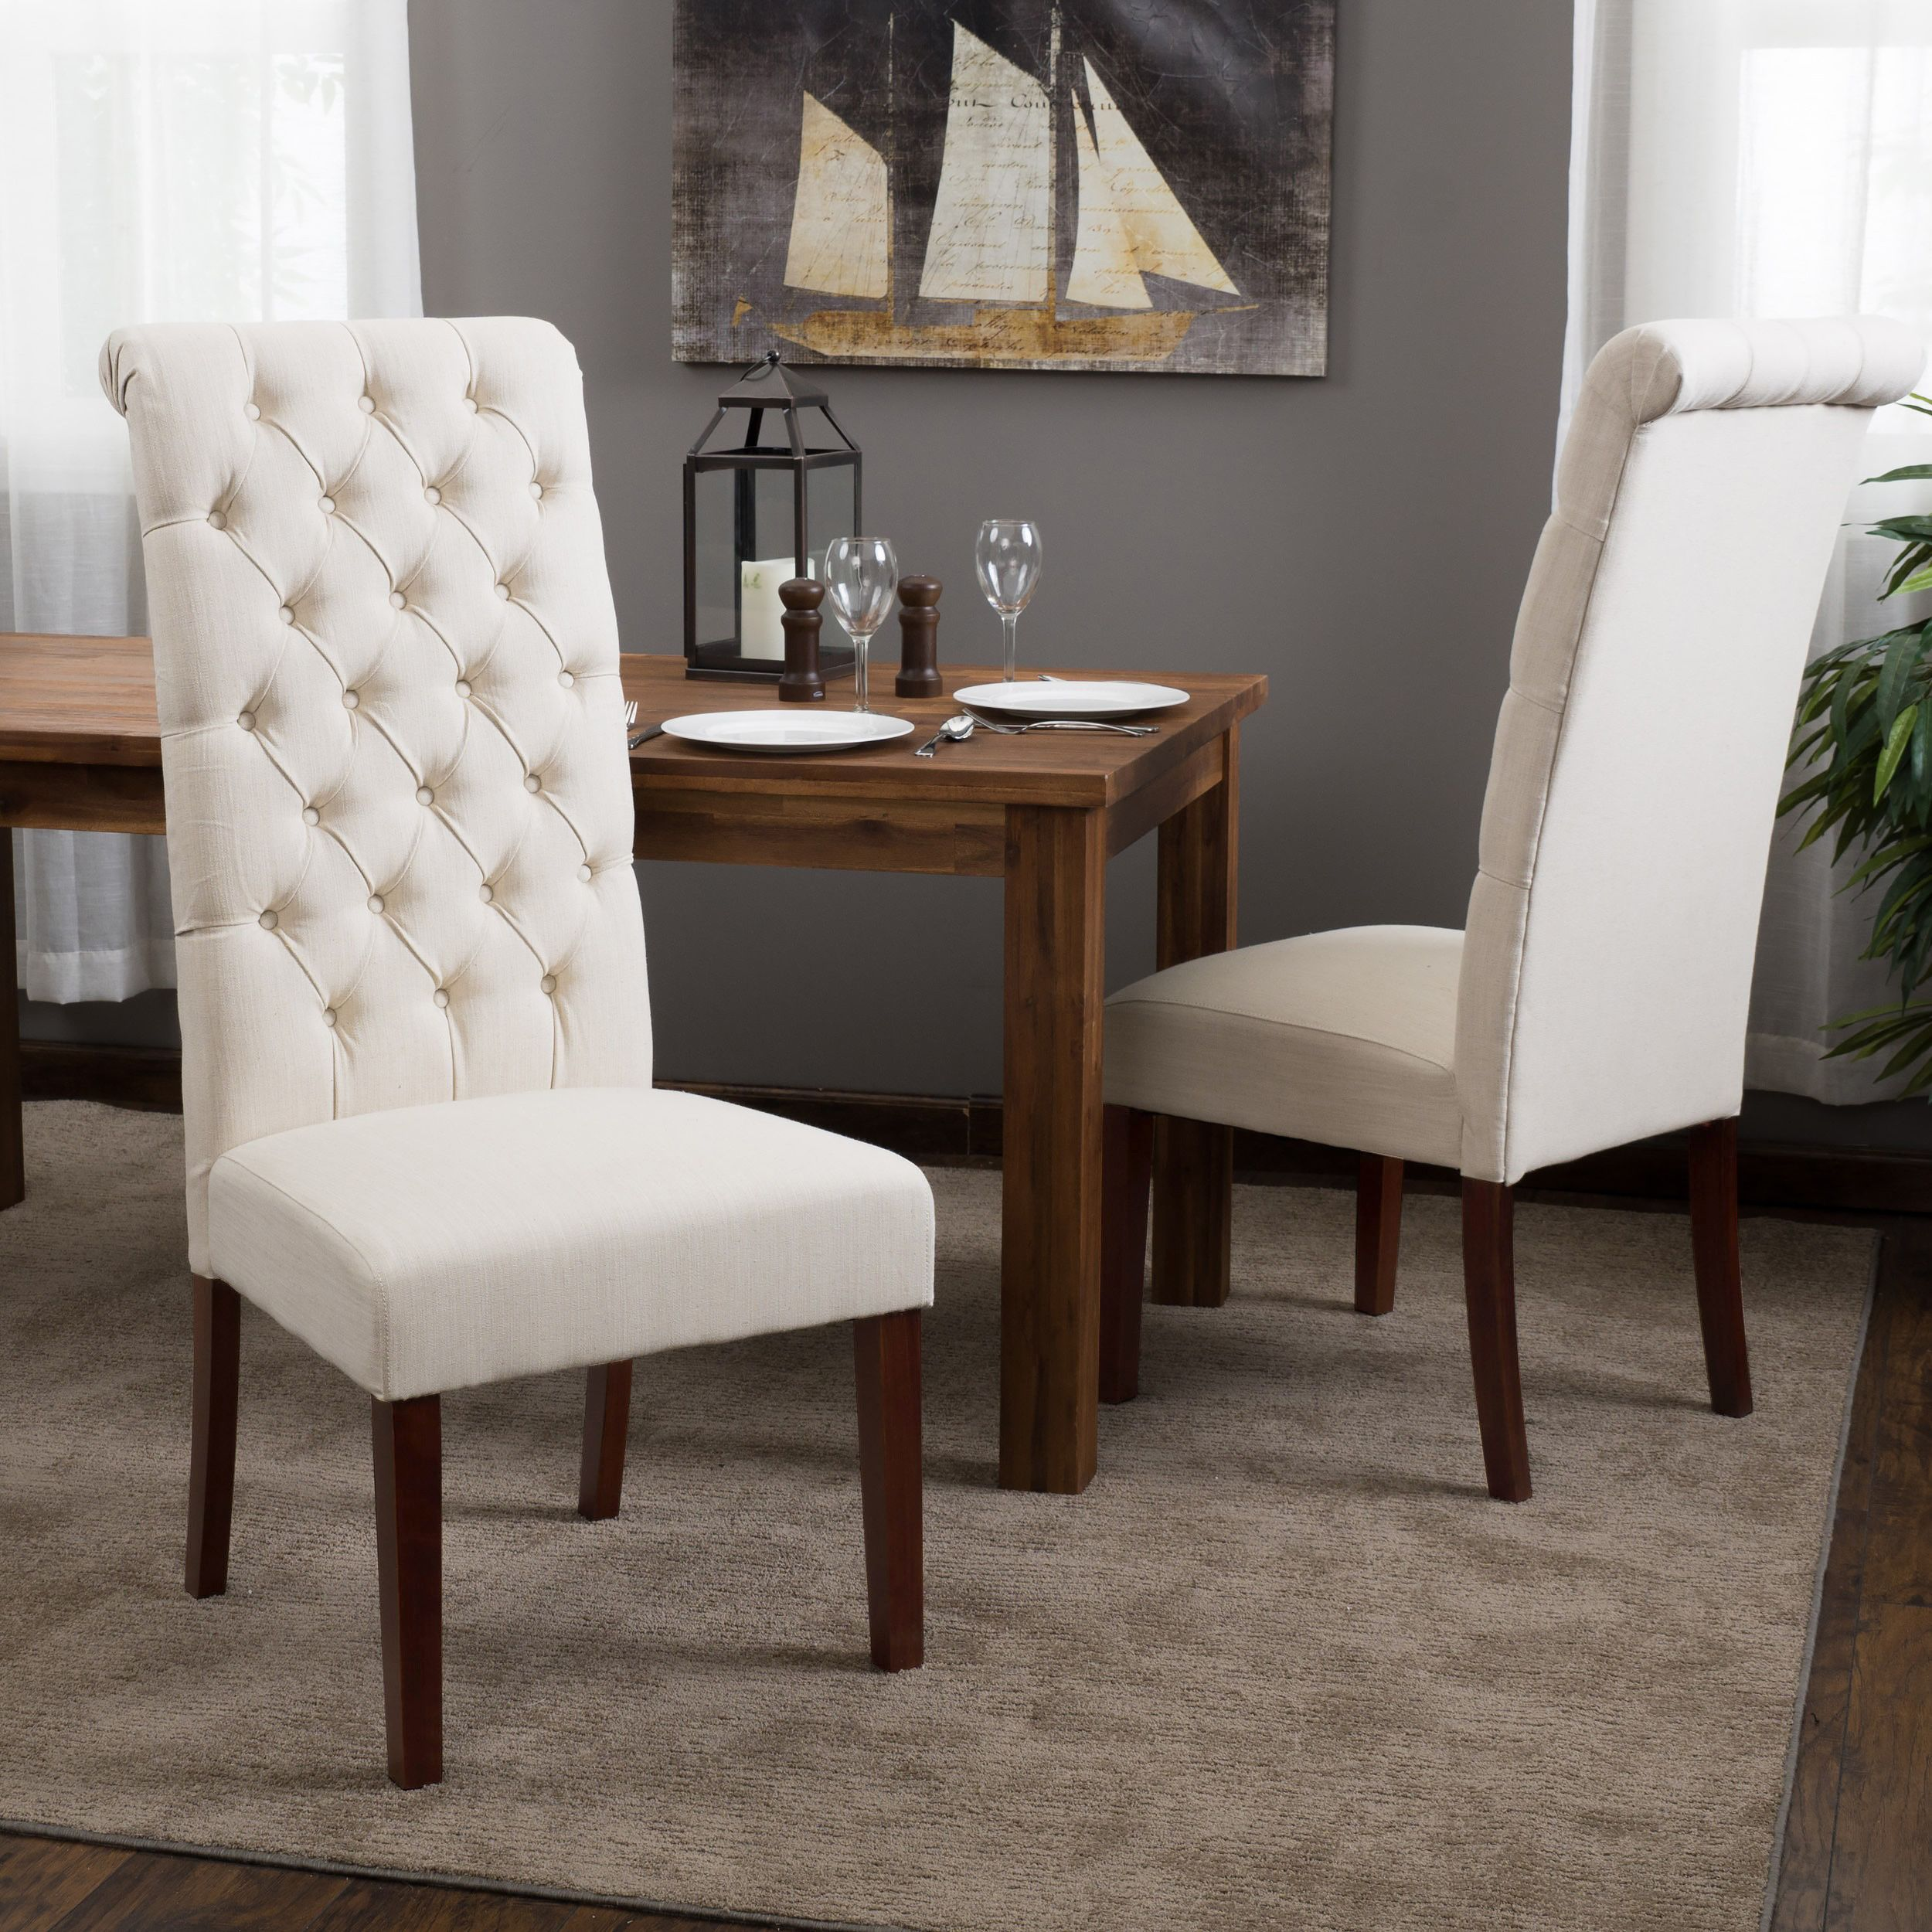 Fabric dining room chairs - Tall Natural Tufted Fabric Dining Chair Set Of 2 By Christopher Knight Home By Christopher Knight Home